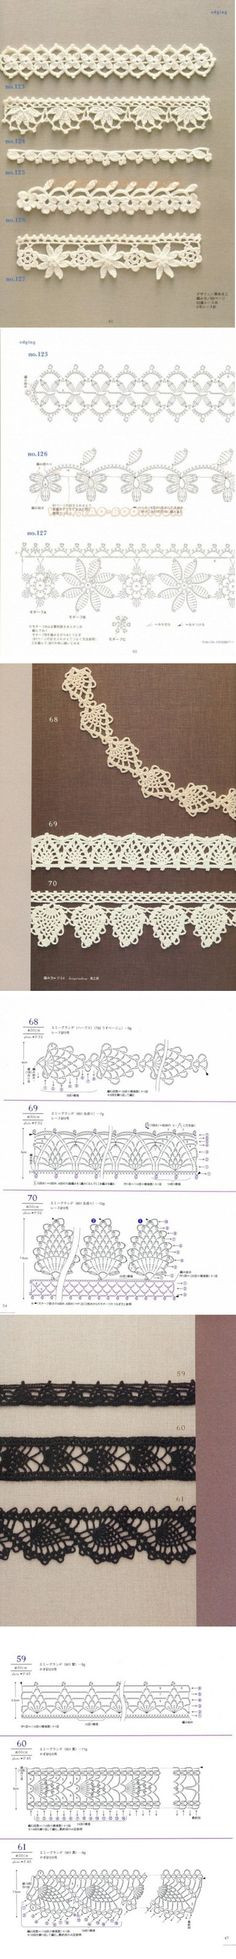 Ideas For Crochet Edging Patterns Lace Ganchillo Crochet Boarders, Crochet Edging Patterns, Crochet Lace Edging, Crochet Diagram, Crochet Chart, Crochet Doilies, Knitting Patterns, Crochet Edgings, Lace Patterns